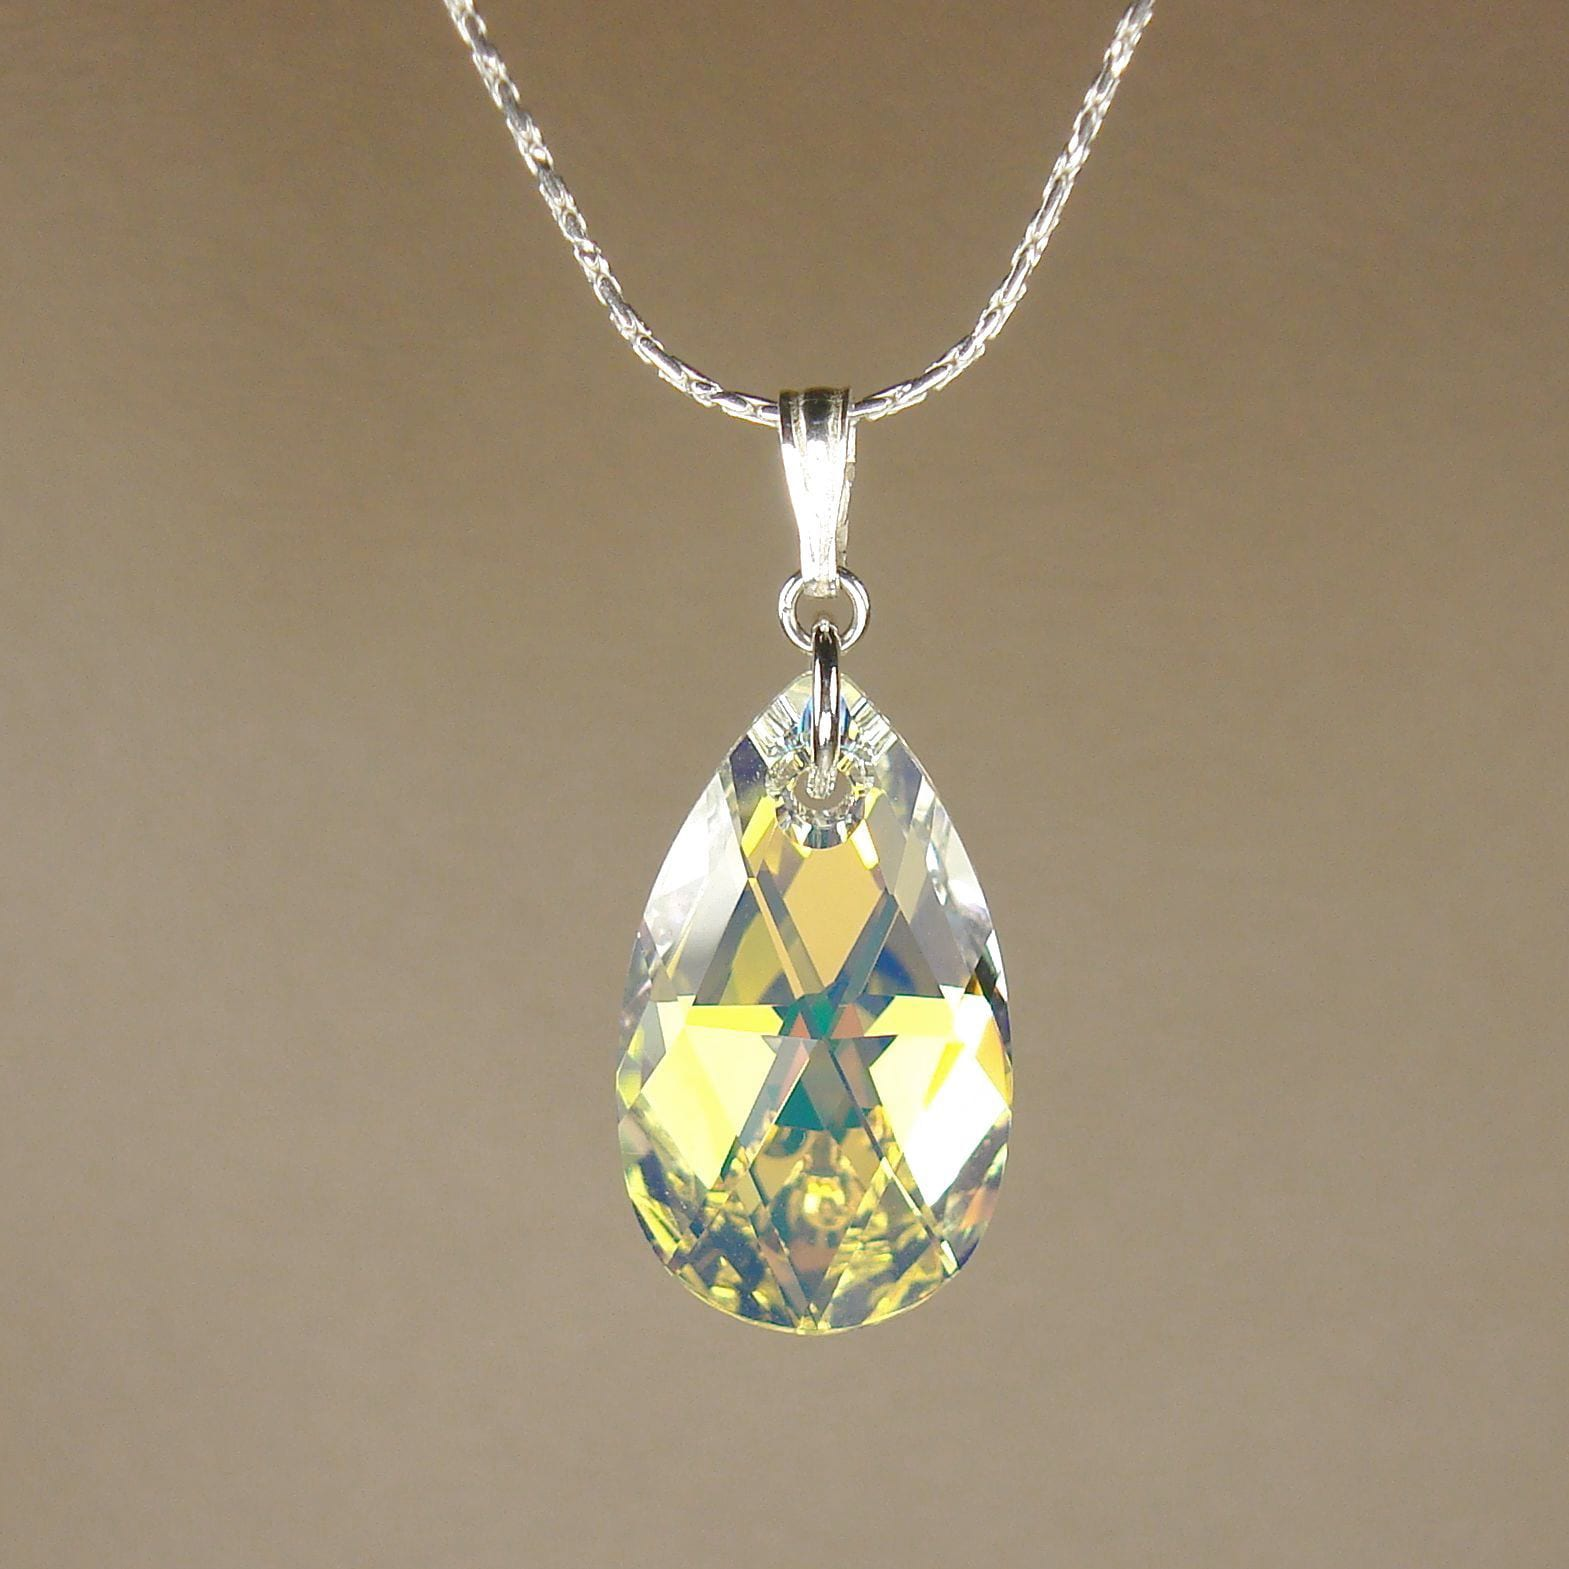 Shop handmade jewelry by dawn large crystal aurora borealis pear shop handmade jewelry by dawn large crystal aurora borealis pear sterling necklace usa on sale free shipping on orders over 45 overstock aloadofball Gallery